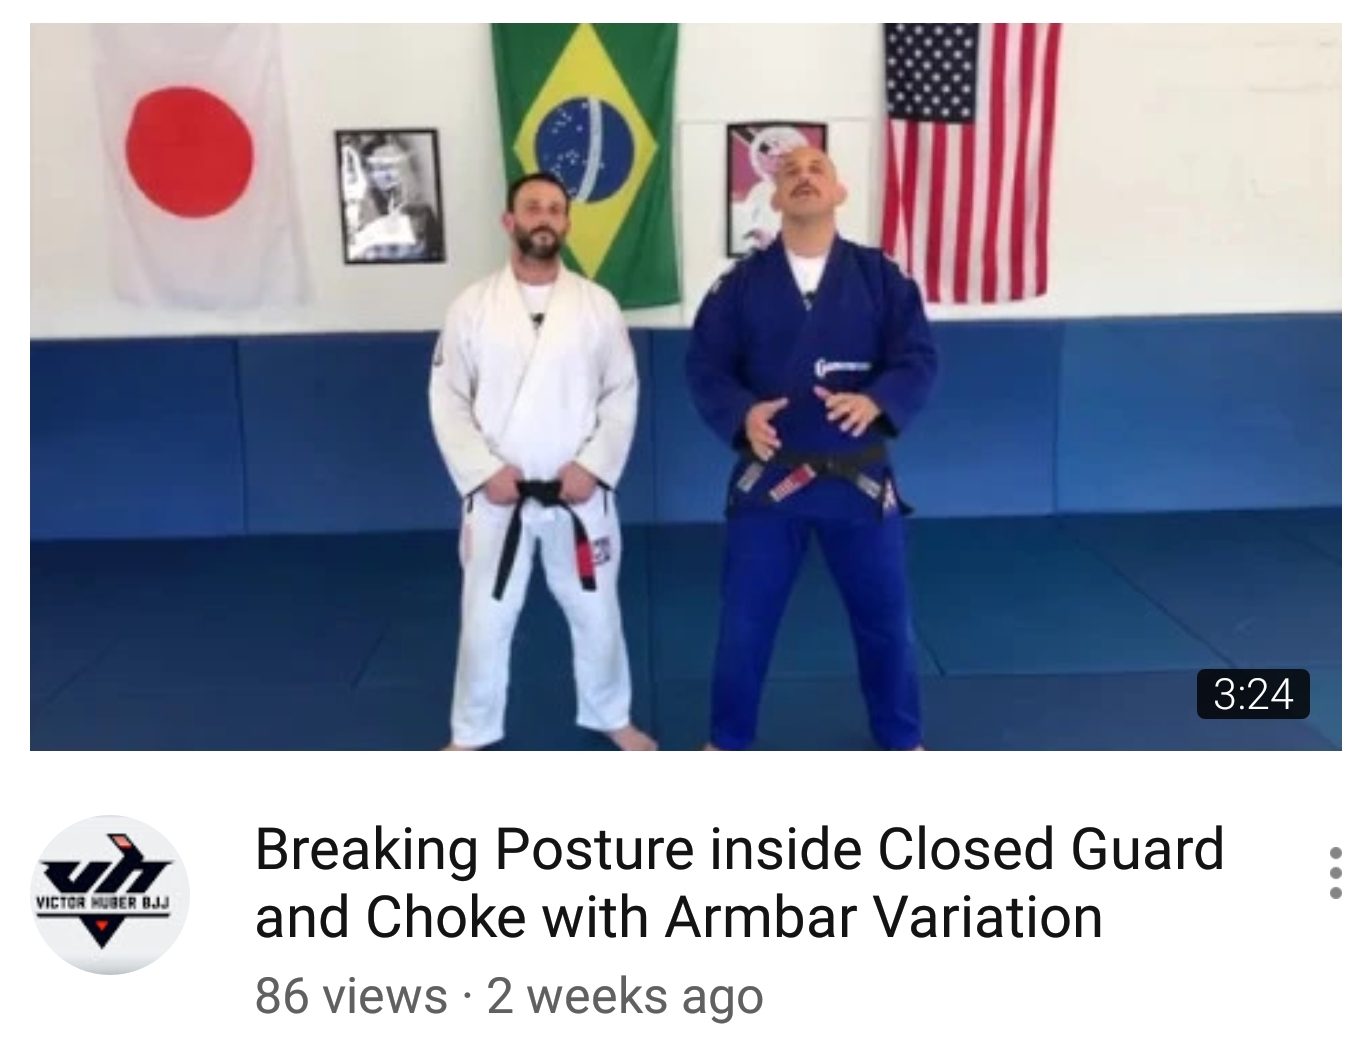 Victor Huber BJJ on YouTube